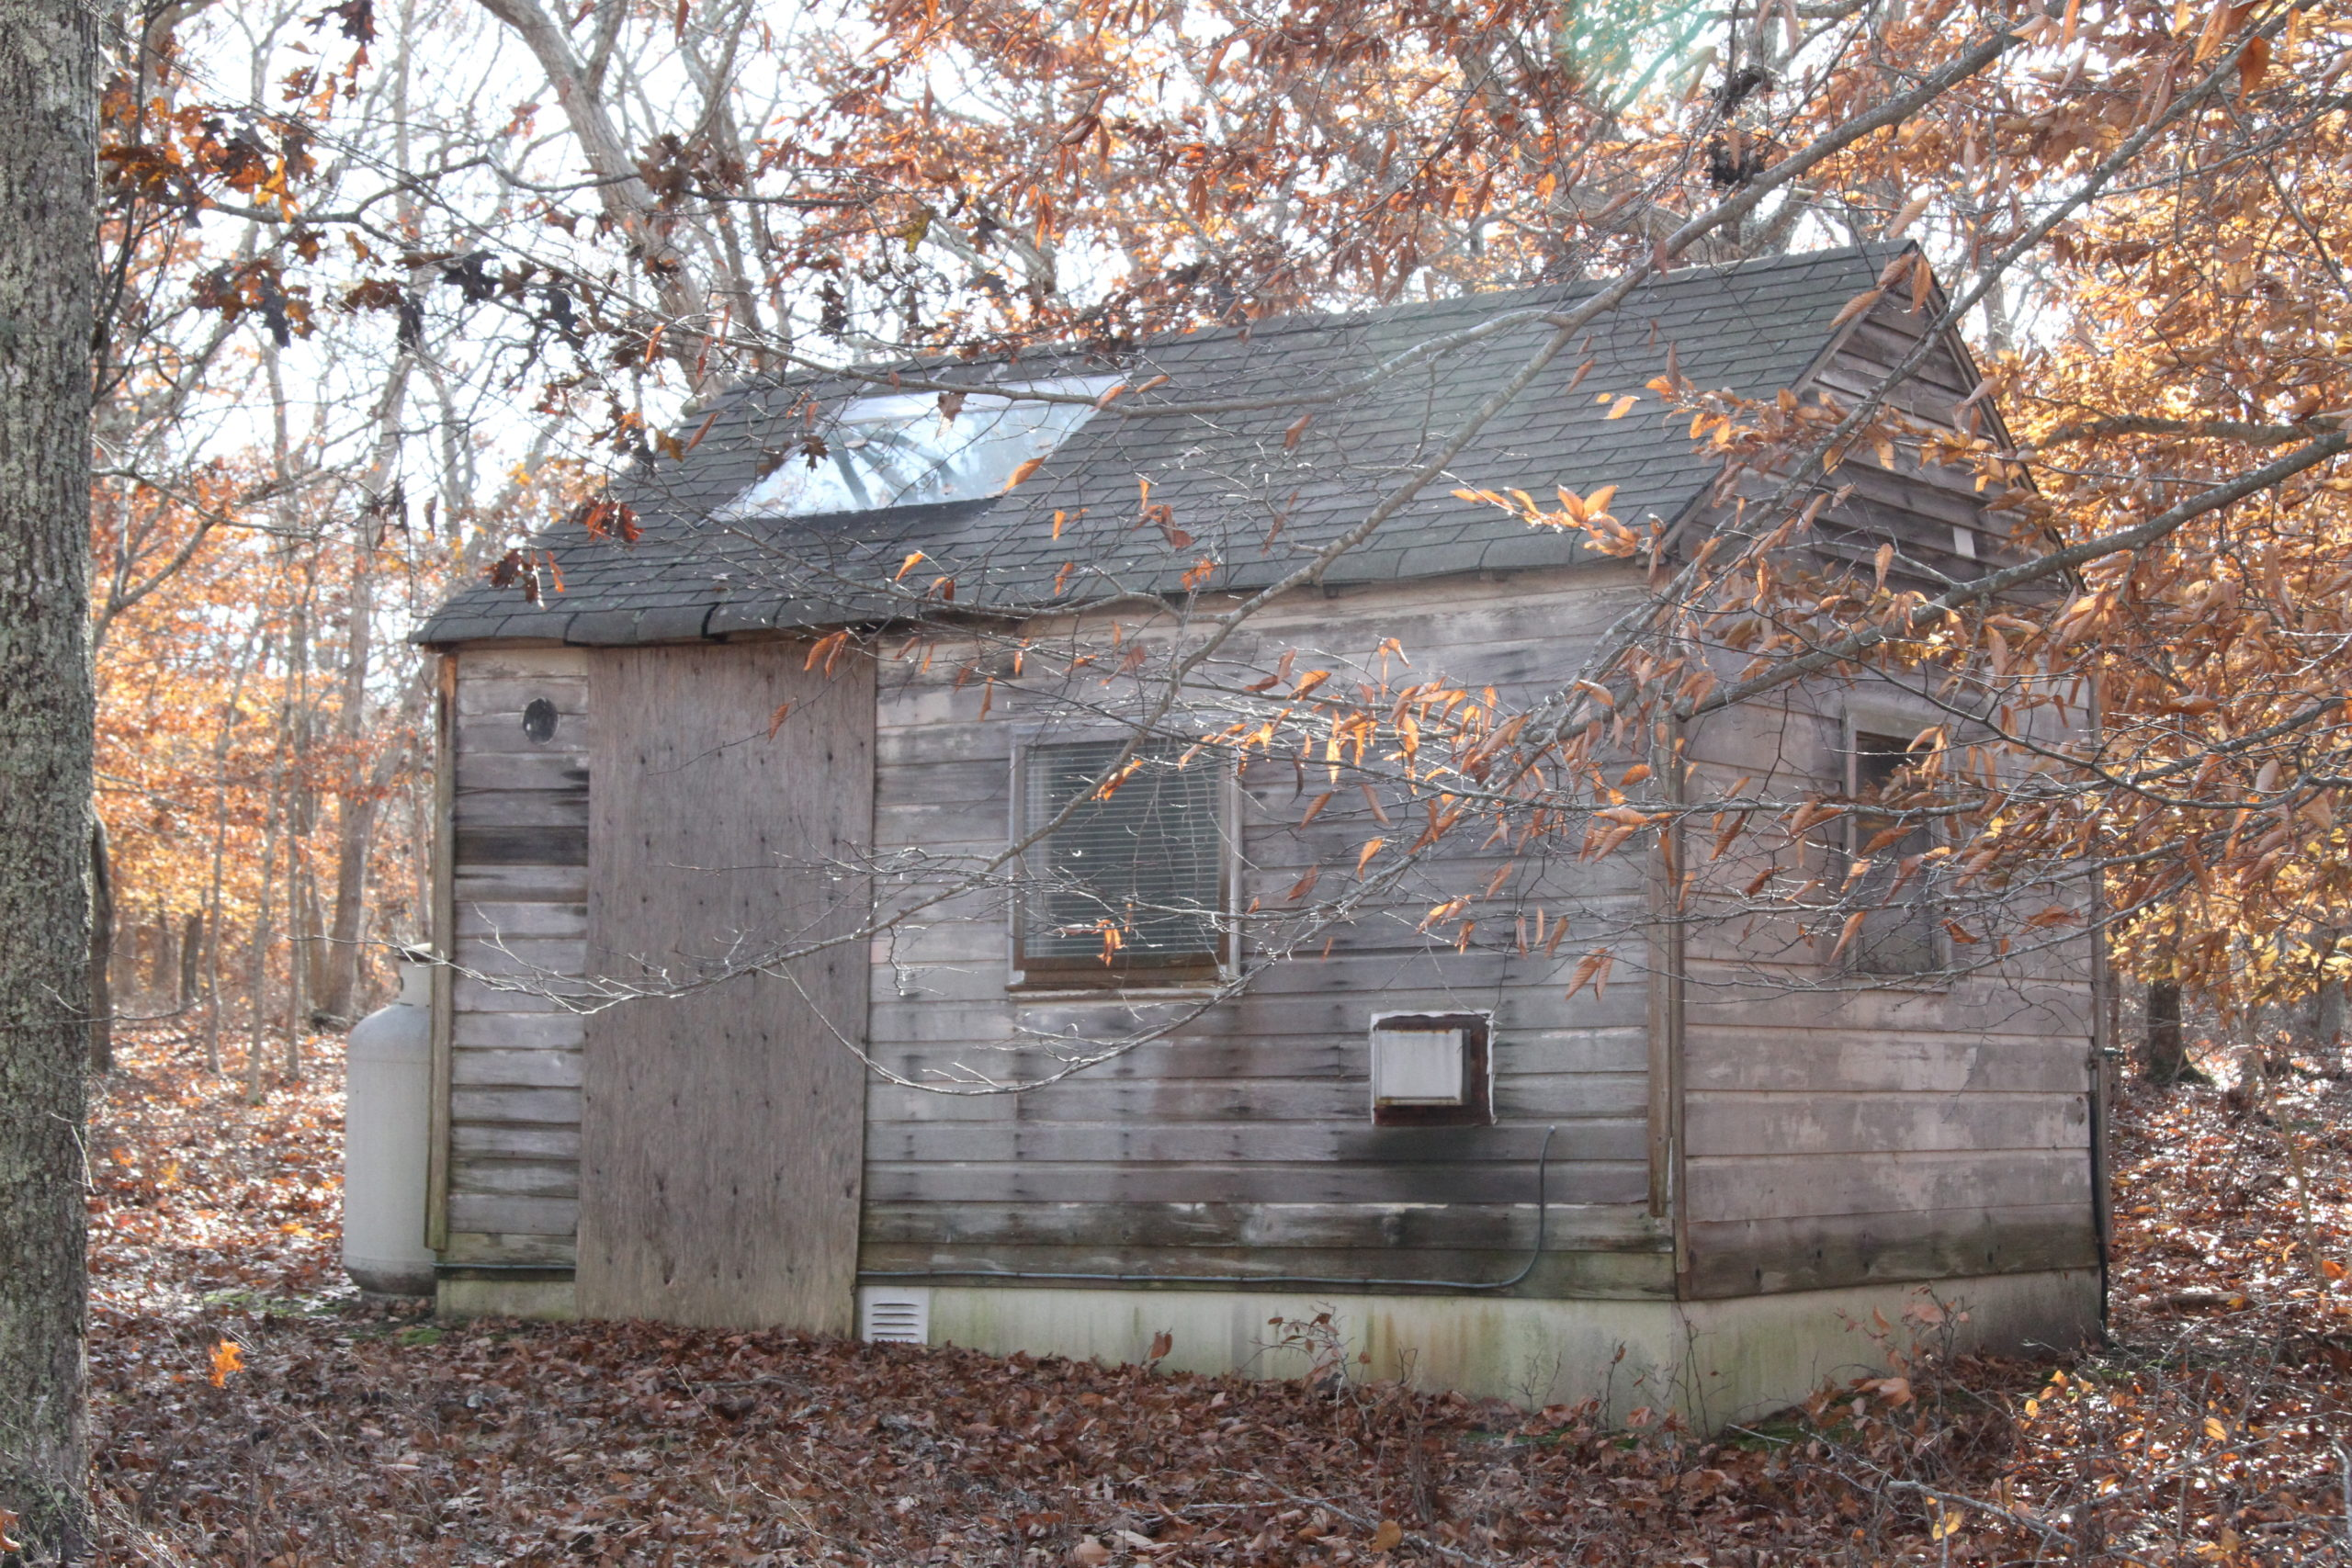 The studios that were used by artists James Brooks and Charlotte Park have crumbled in the years since the town purchased the property in 2013 and now officials are raising questions about how money that was raised for restoration and programming was spent.